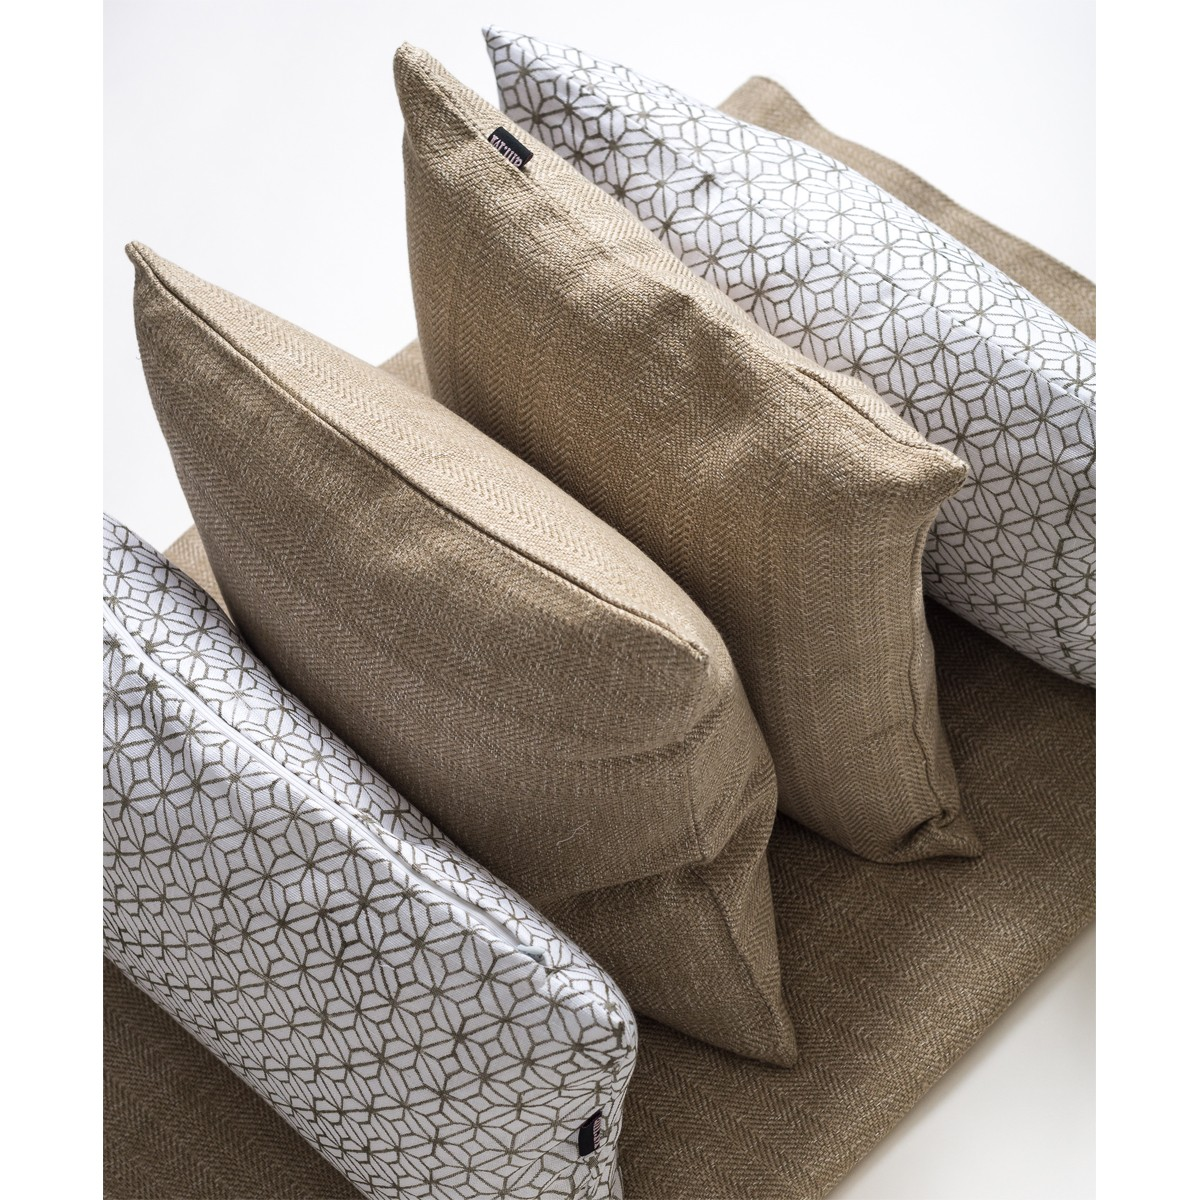 Single White patterned rectangle cushion cover